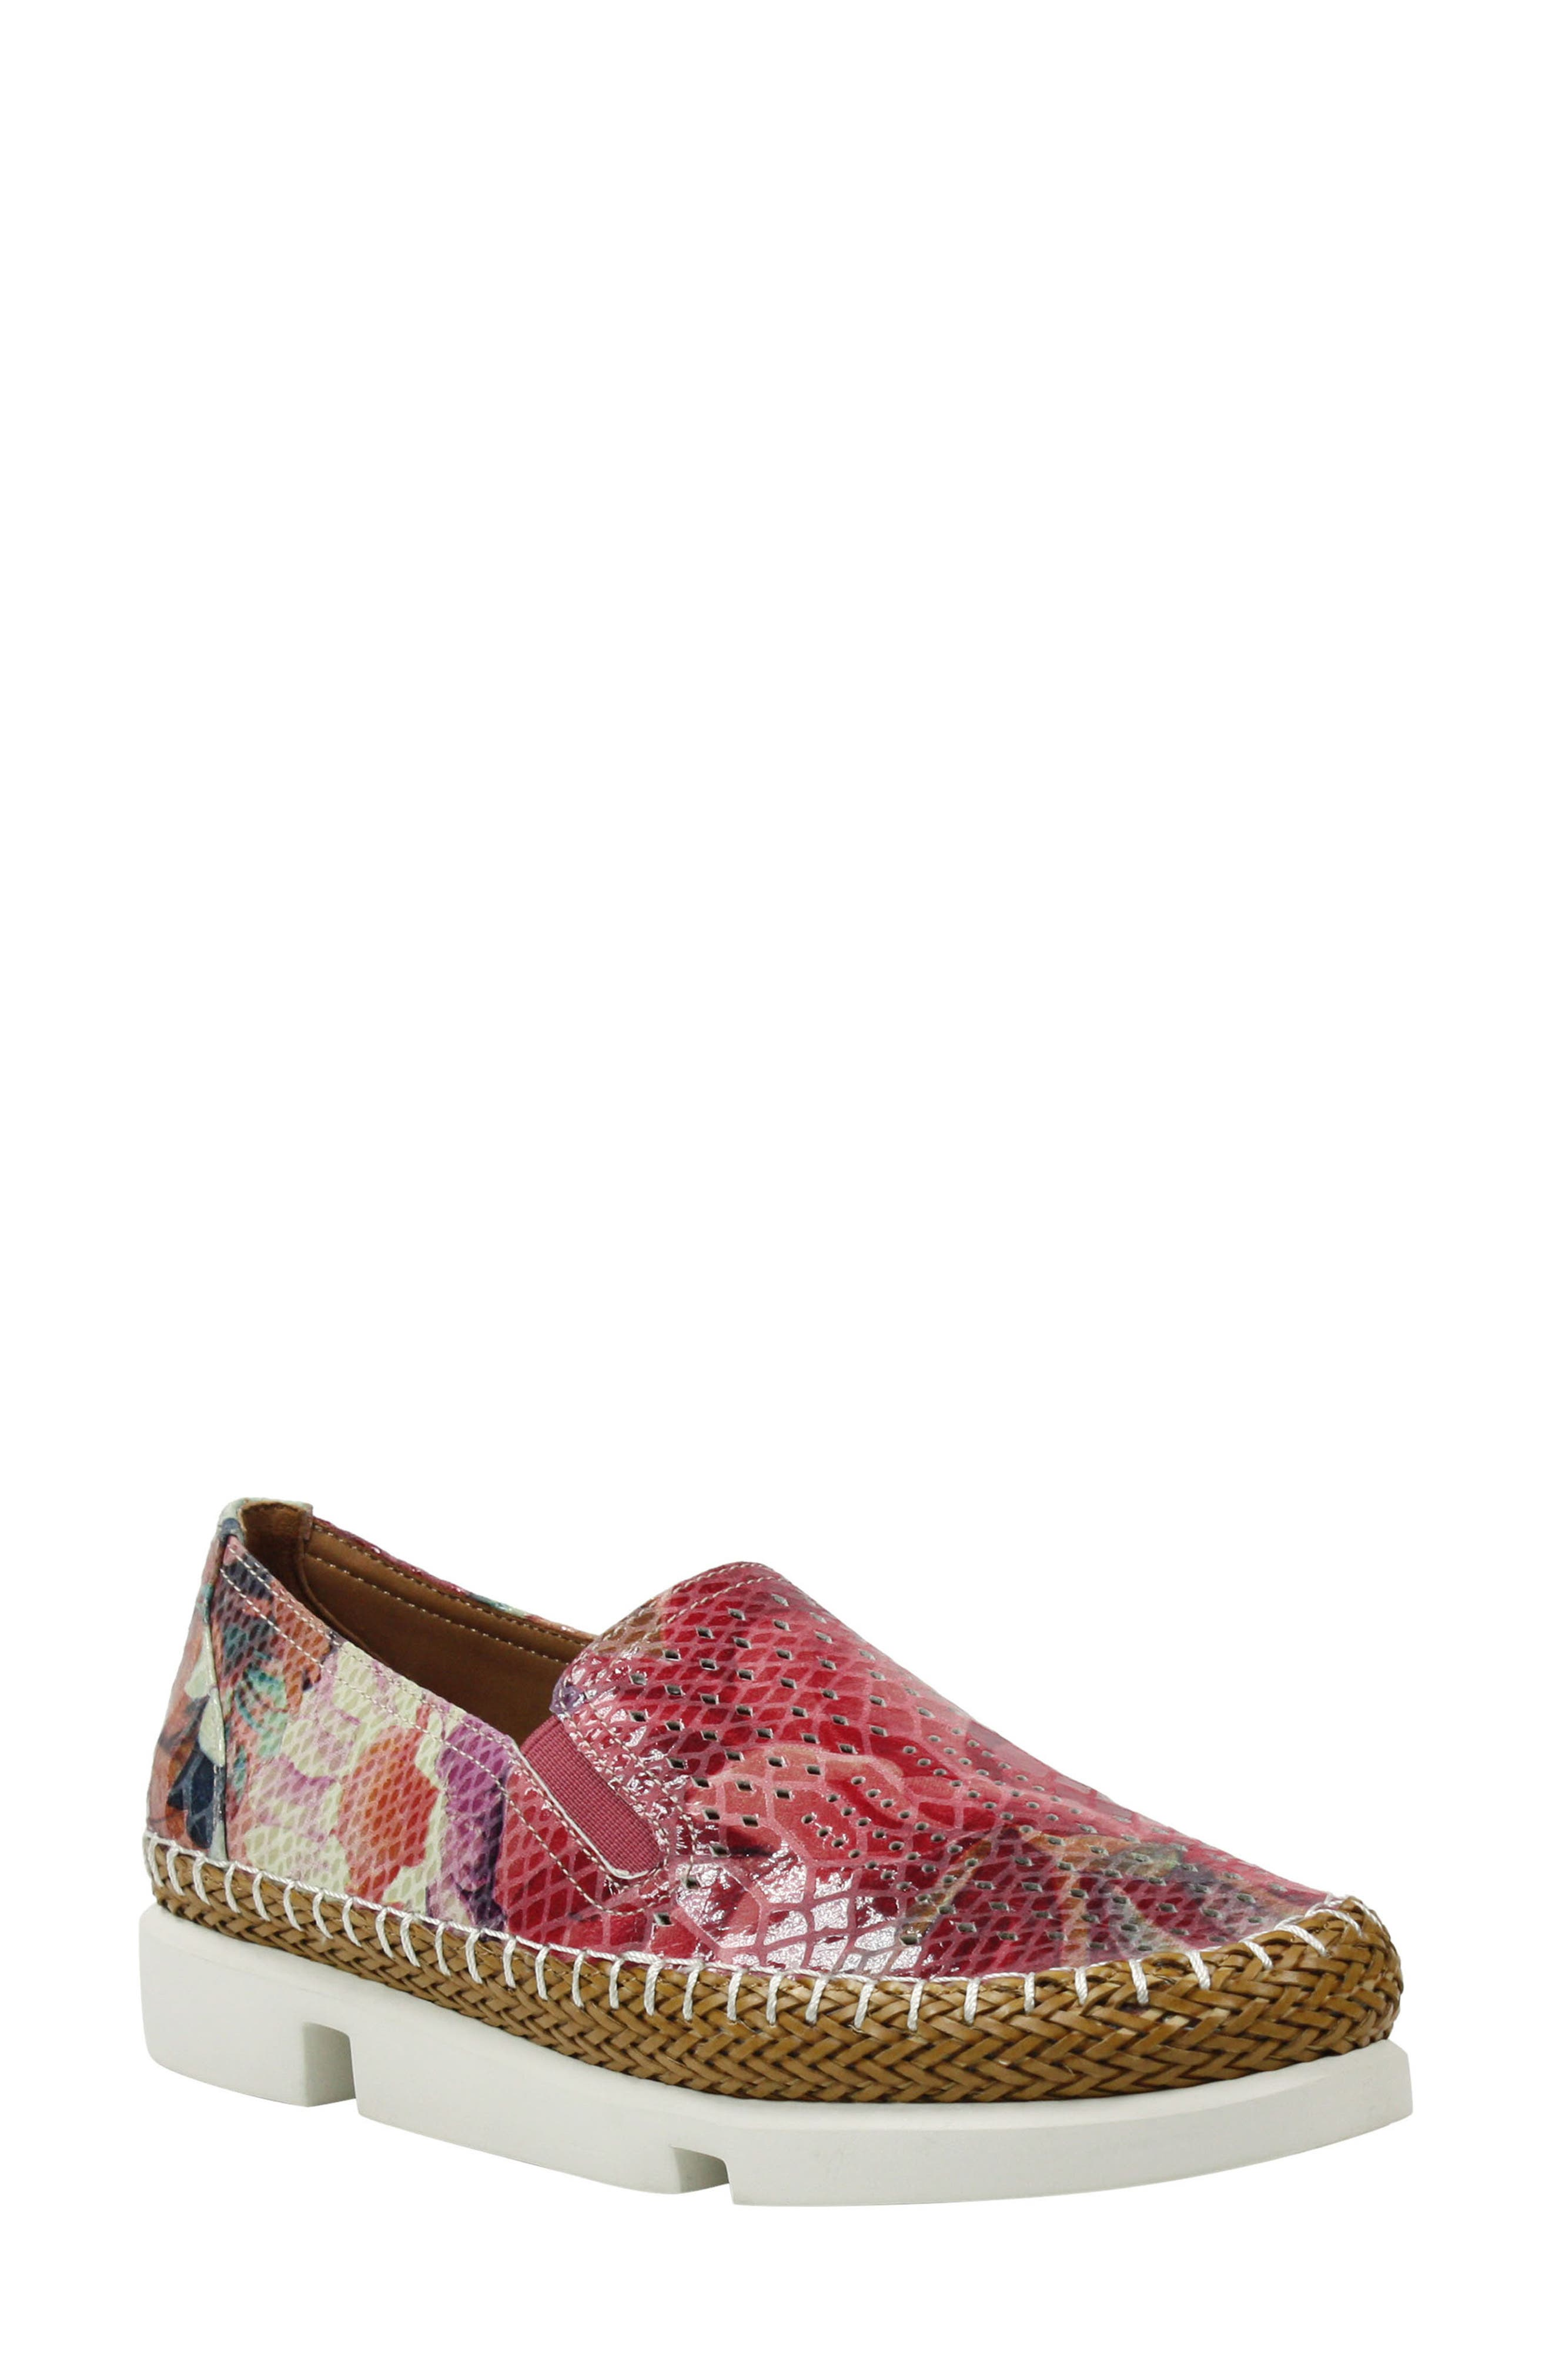 Image of L'Amour Des Pieds Stazzema Snakeskin Texture Loafer